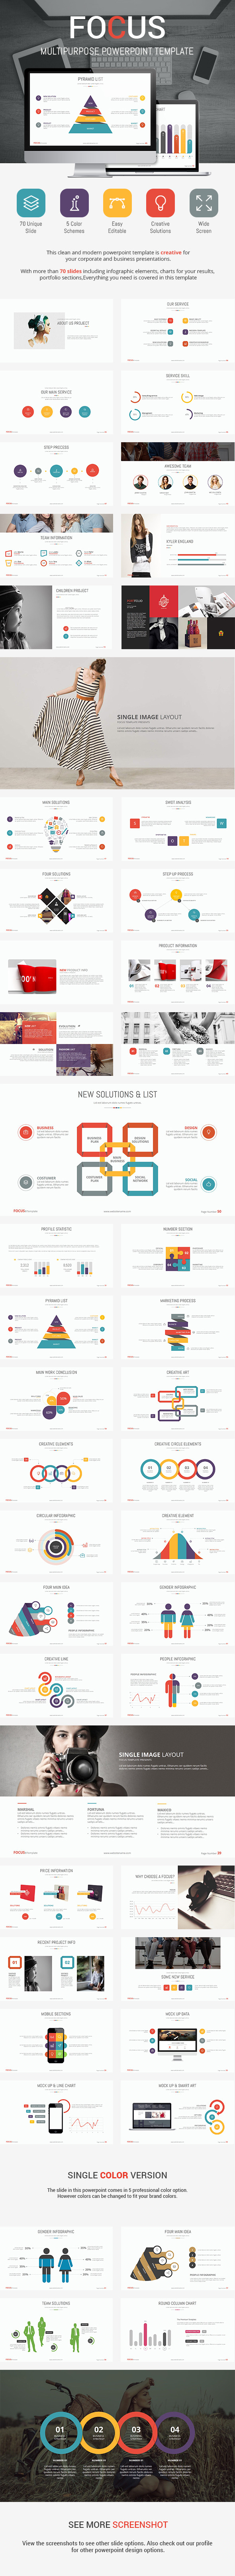 GraphicRiver Focus Presentation Template 9198891